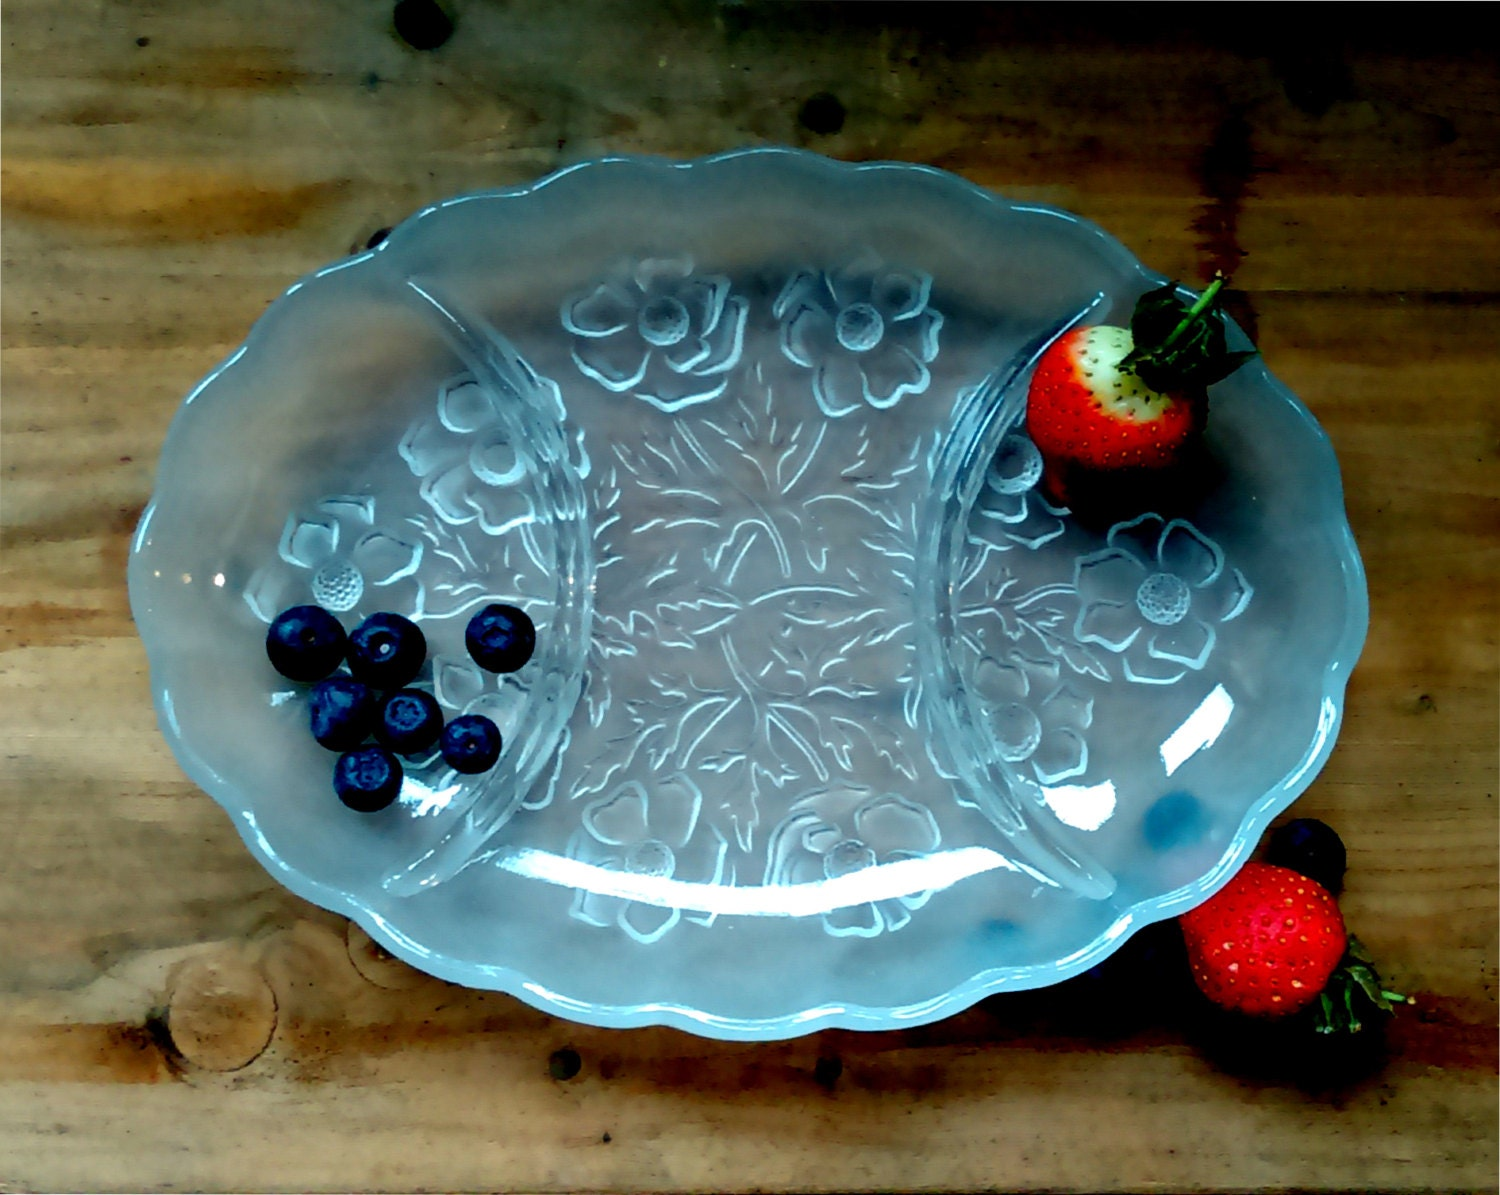 Bagley glass snack tray a decorative tray to be used as a serving tray or vanity tray glass snack set glass vanity tray divided tray.